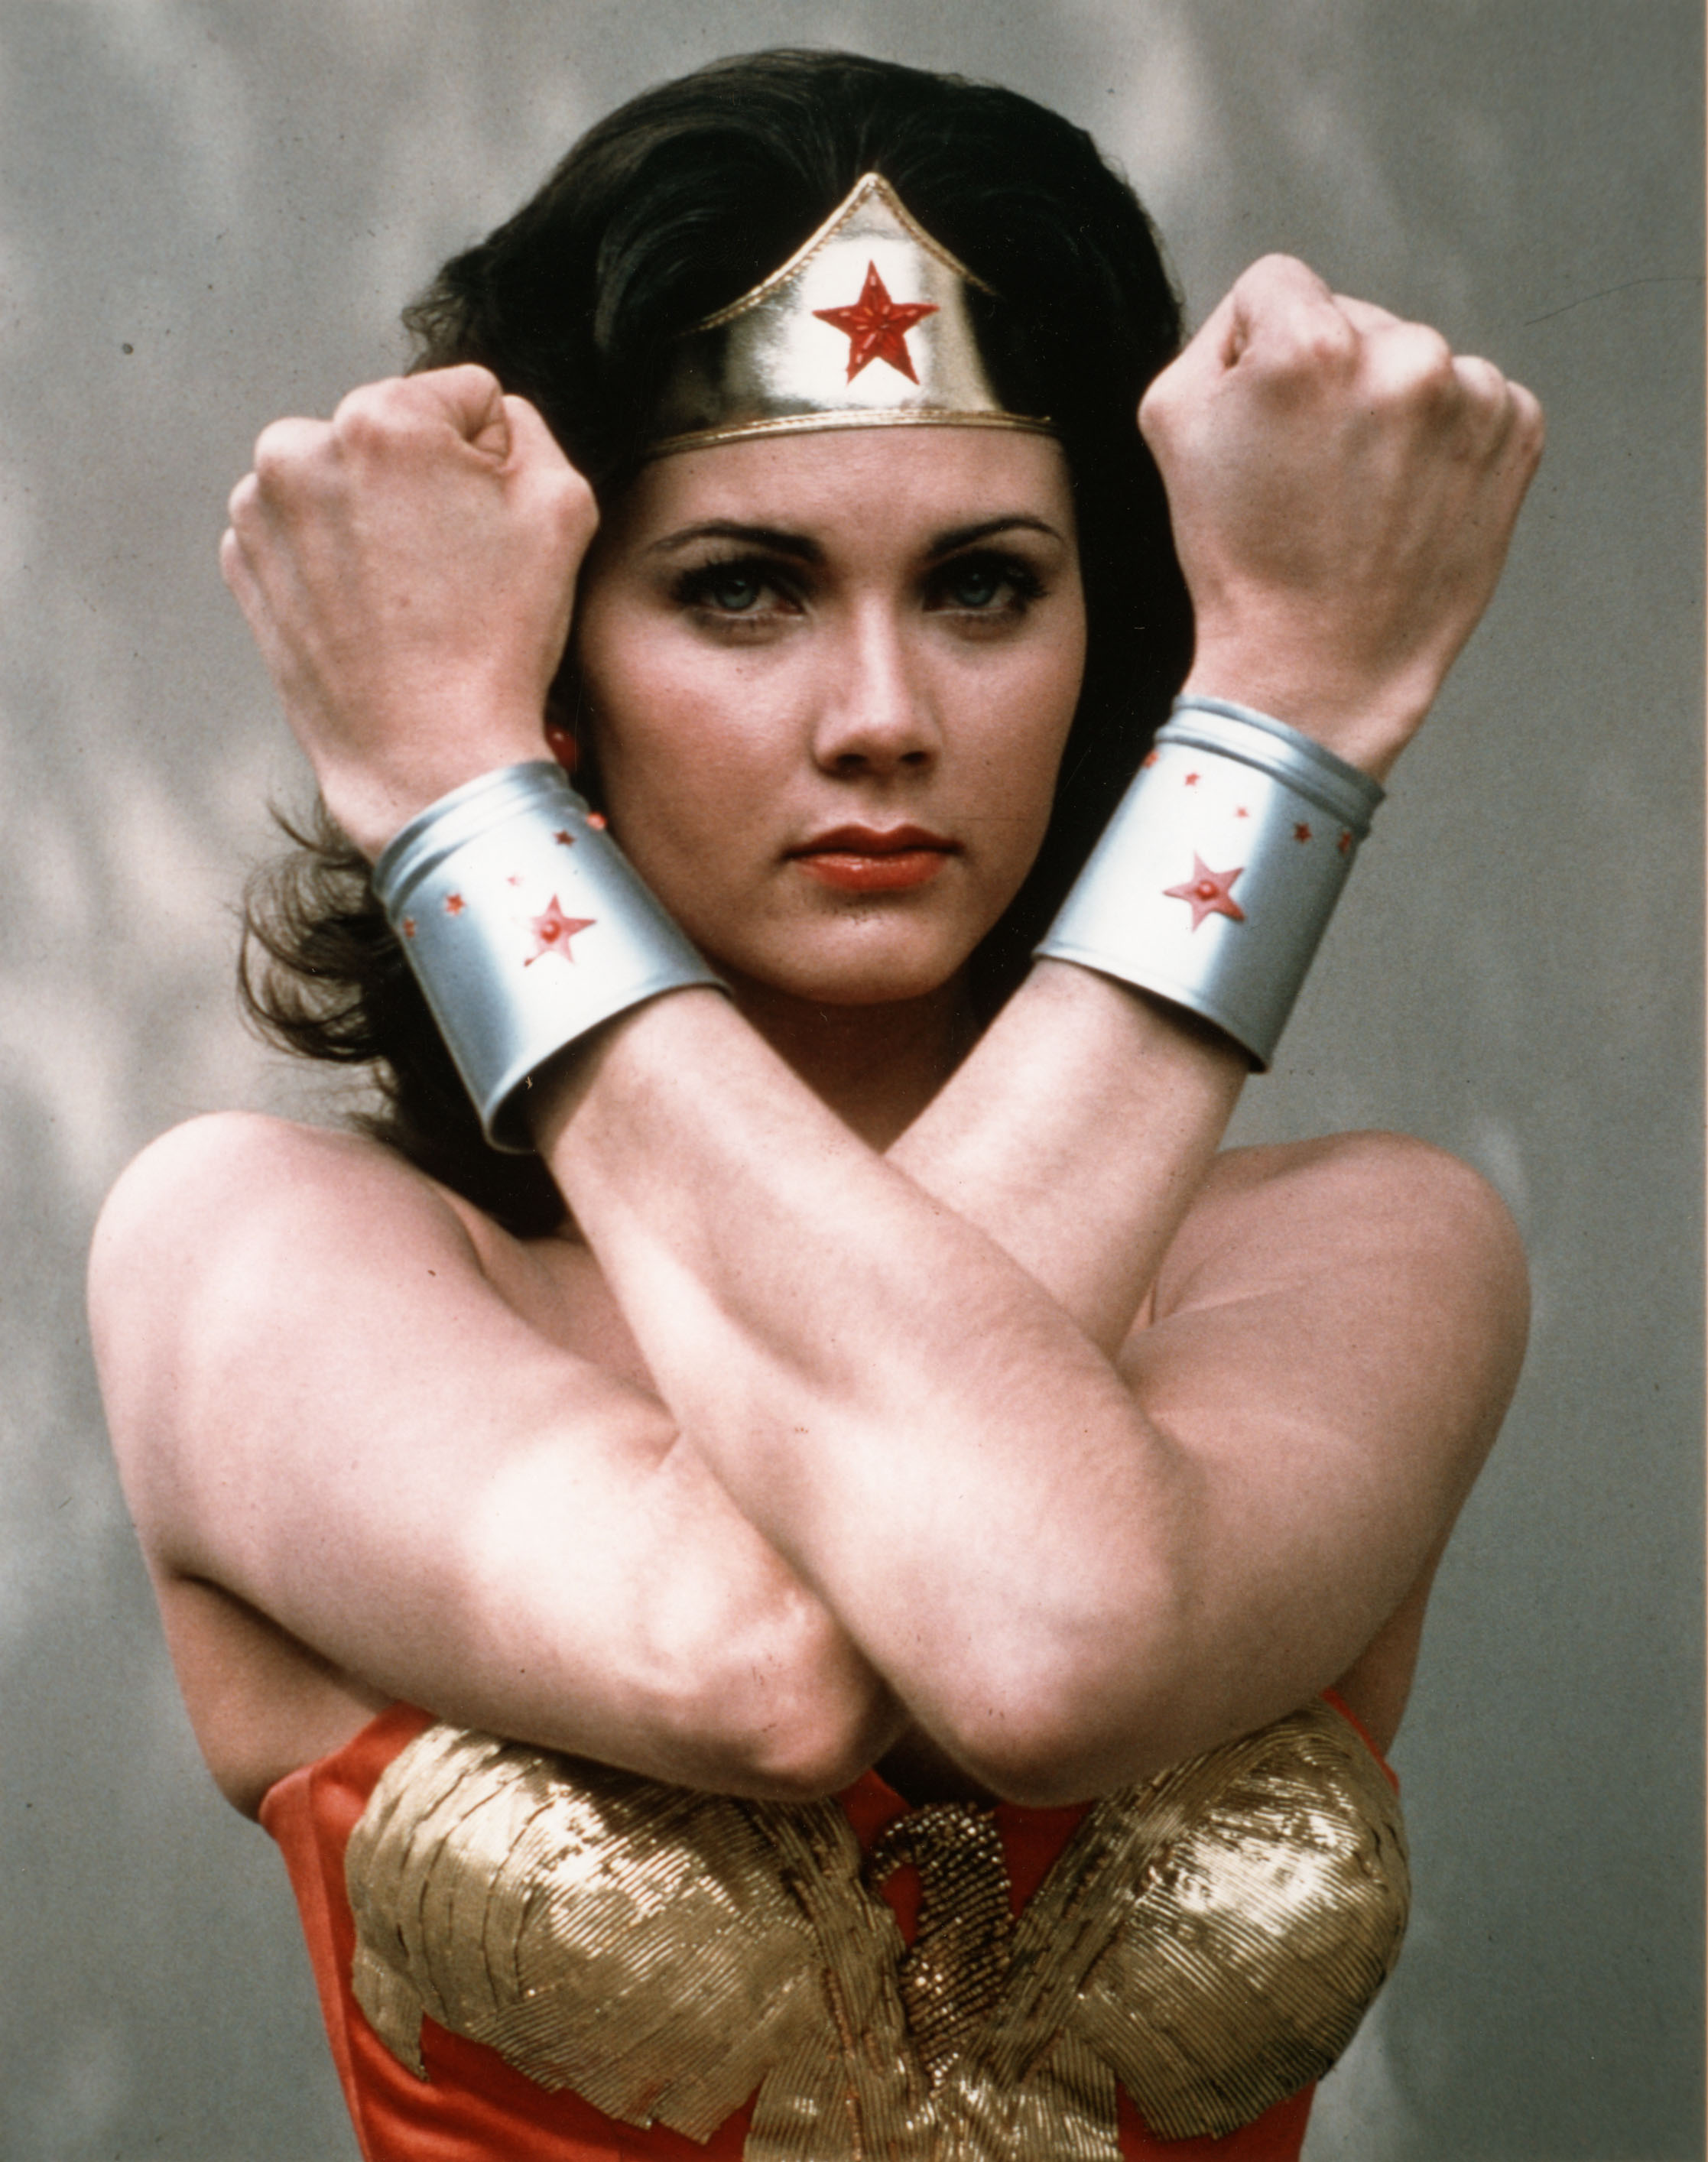 ... Wonder Woman!!!! on Pinterest | Lynda carter, Wonder woman and Linda